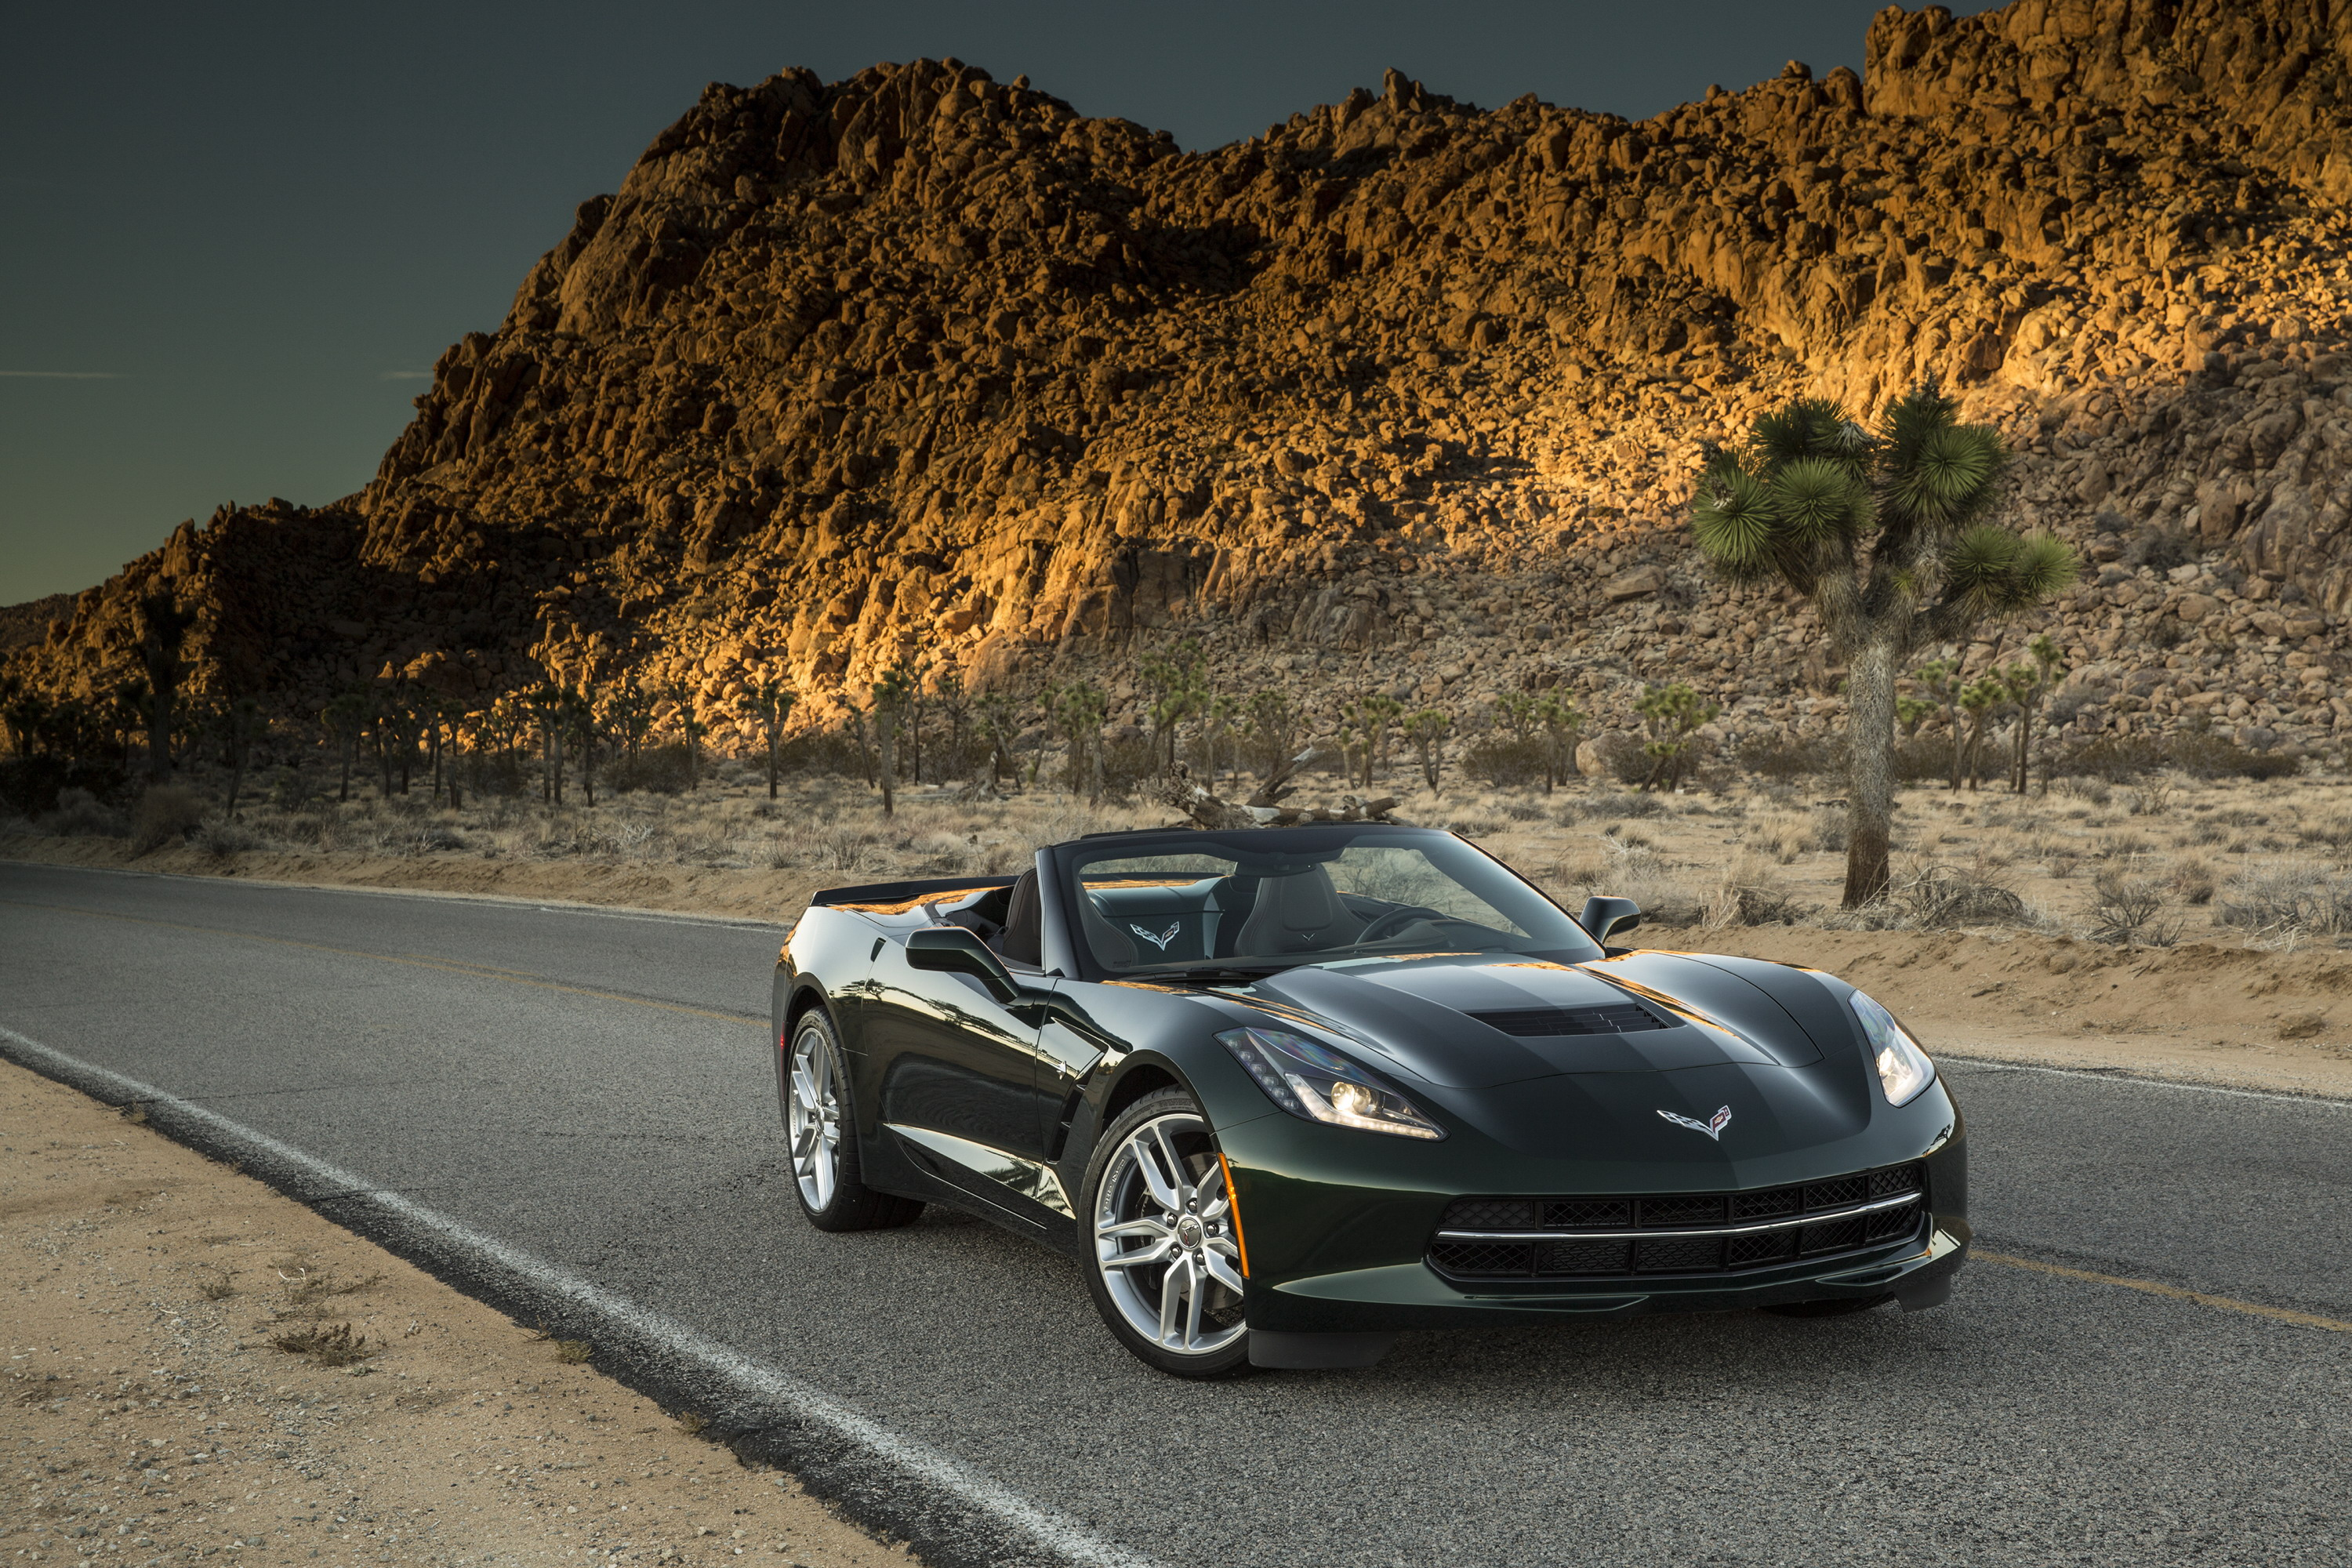 2014 chevrolet corvette stingray convertible review gallery top. Cars Review. Best American Auto & Cars Review